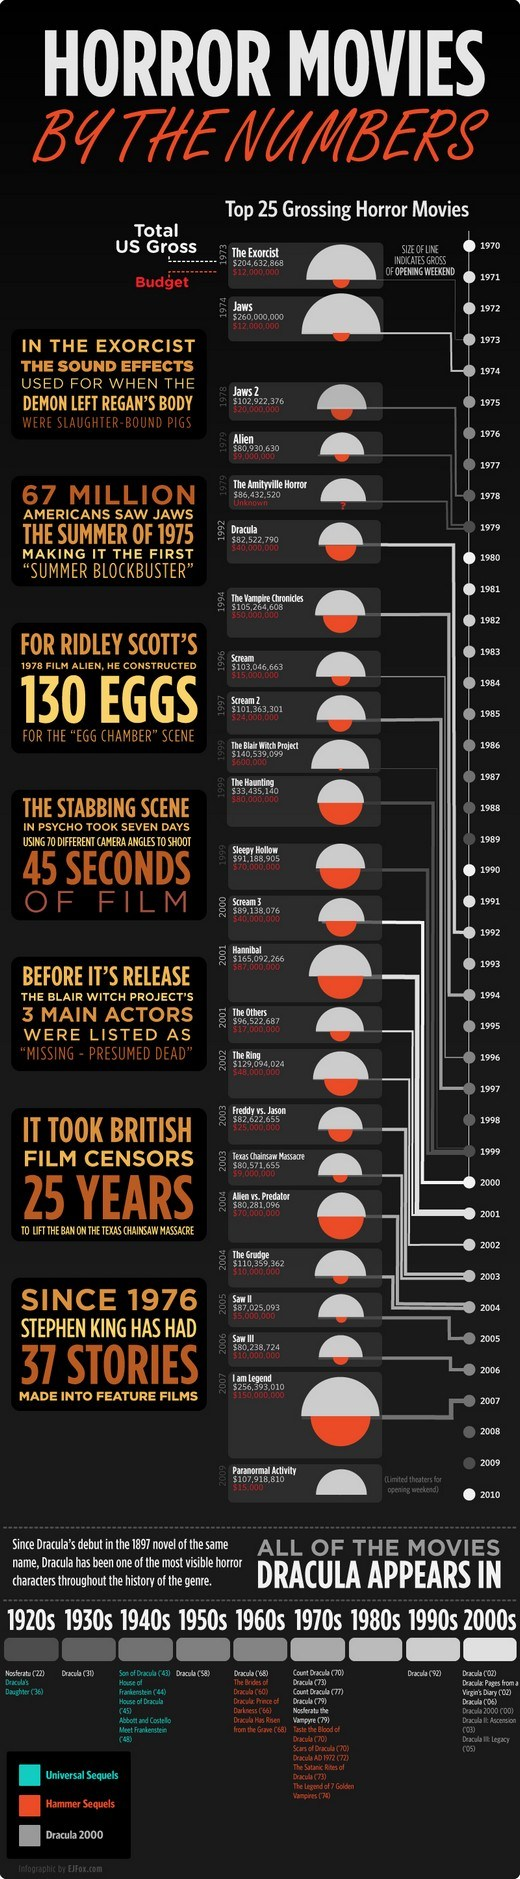 horrormovies infographic